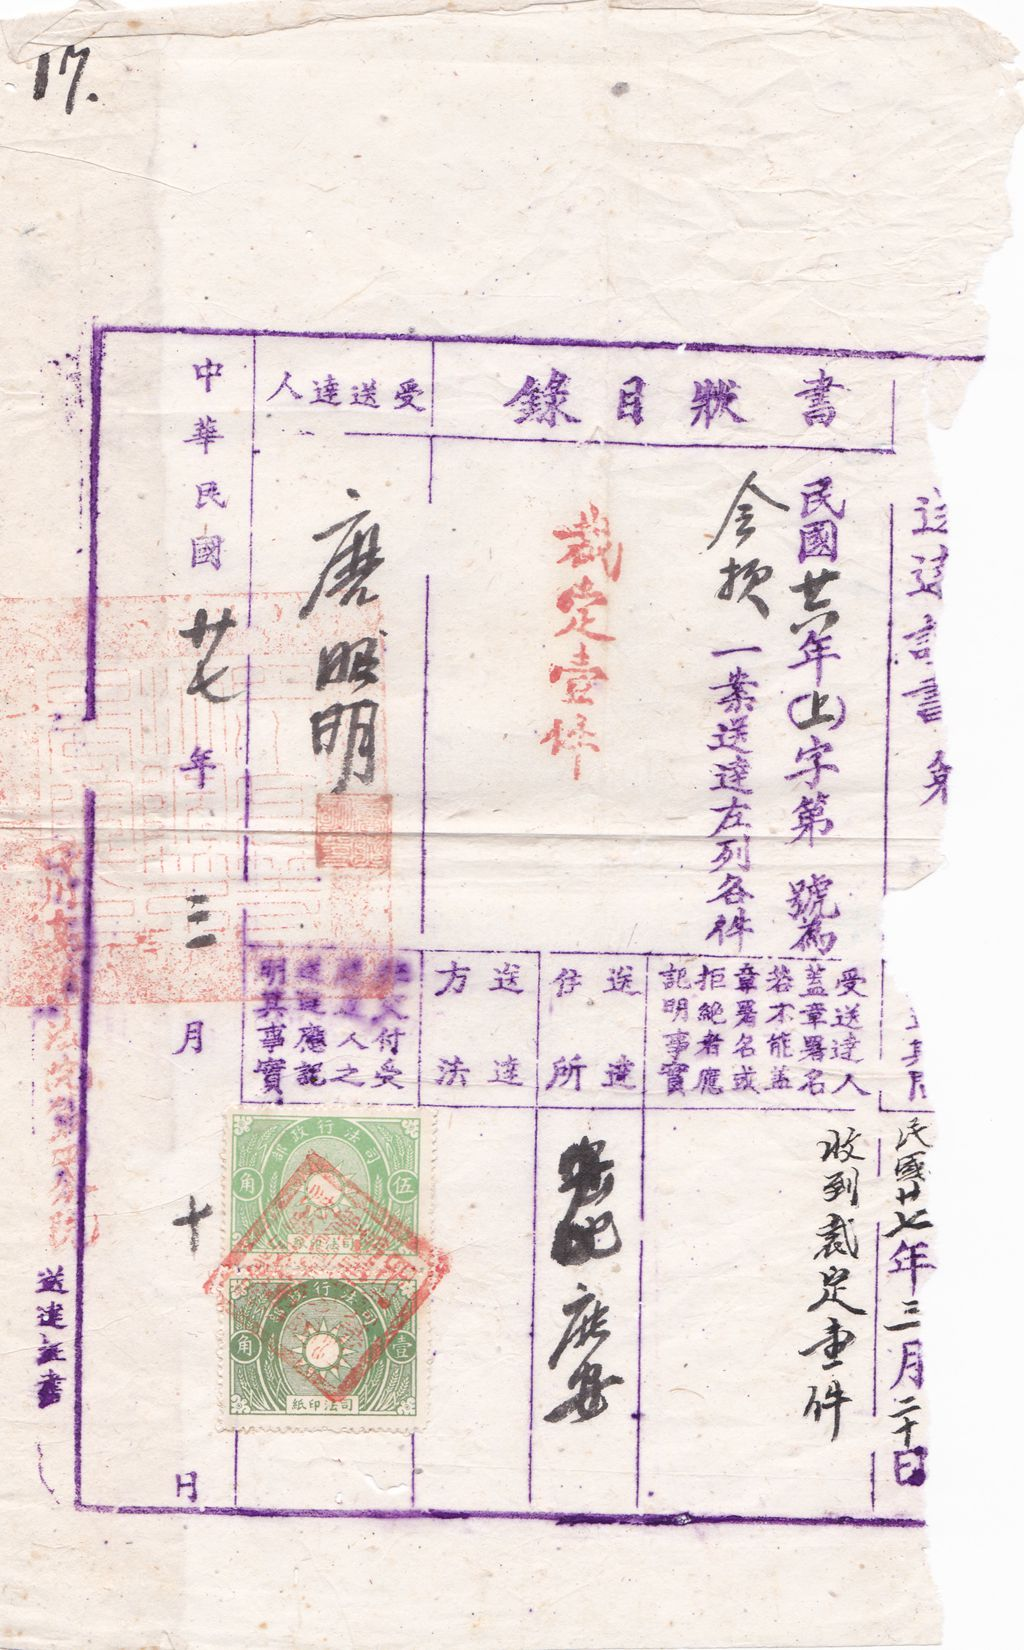 R1084, Judicial Sheets 2 pcs Judicial Stamp, 1938, Sichuan, China